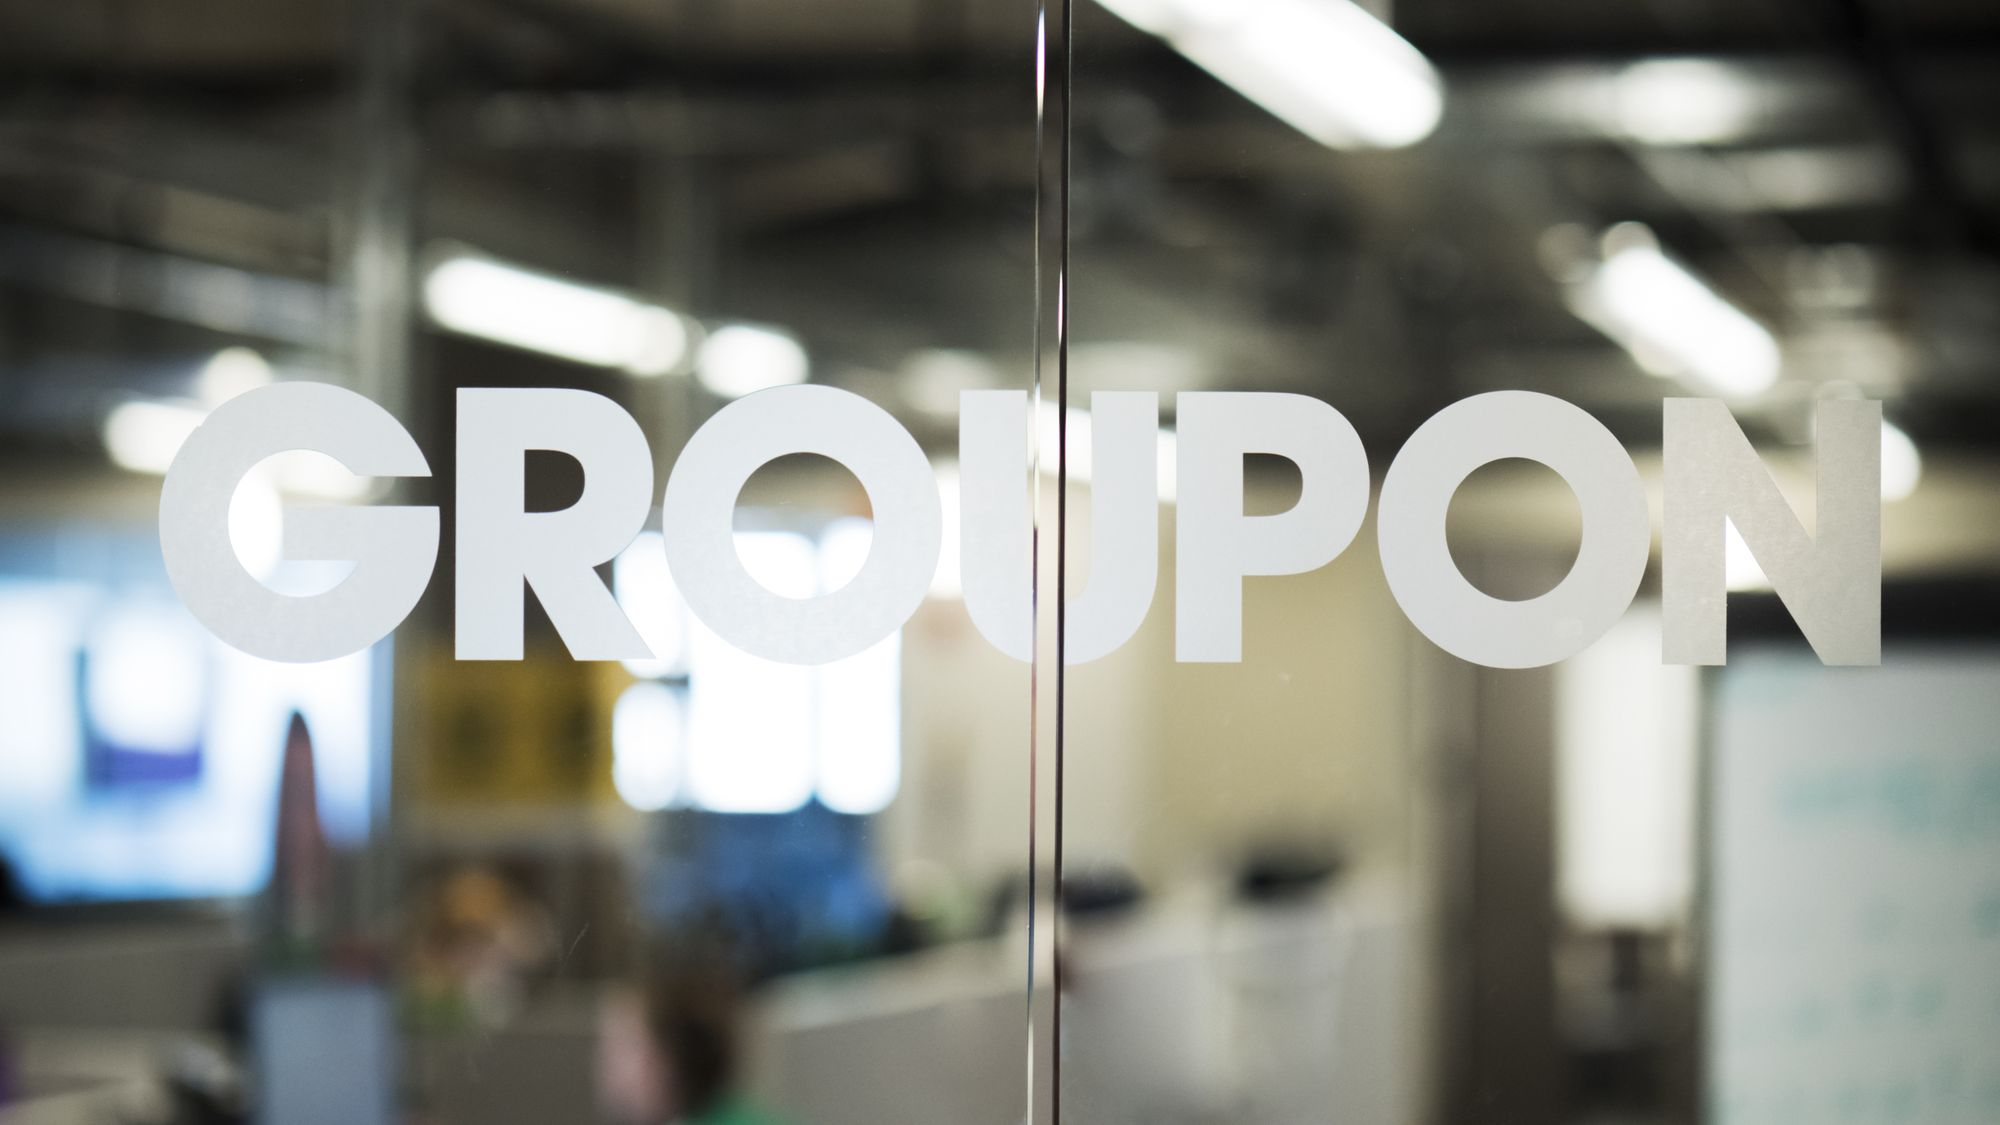 Glass doors with Groupon logo and blurred office in background